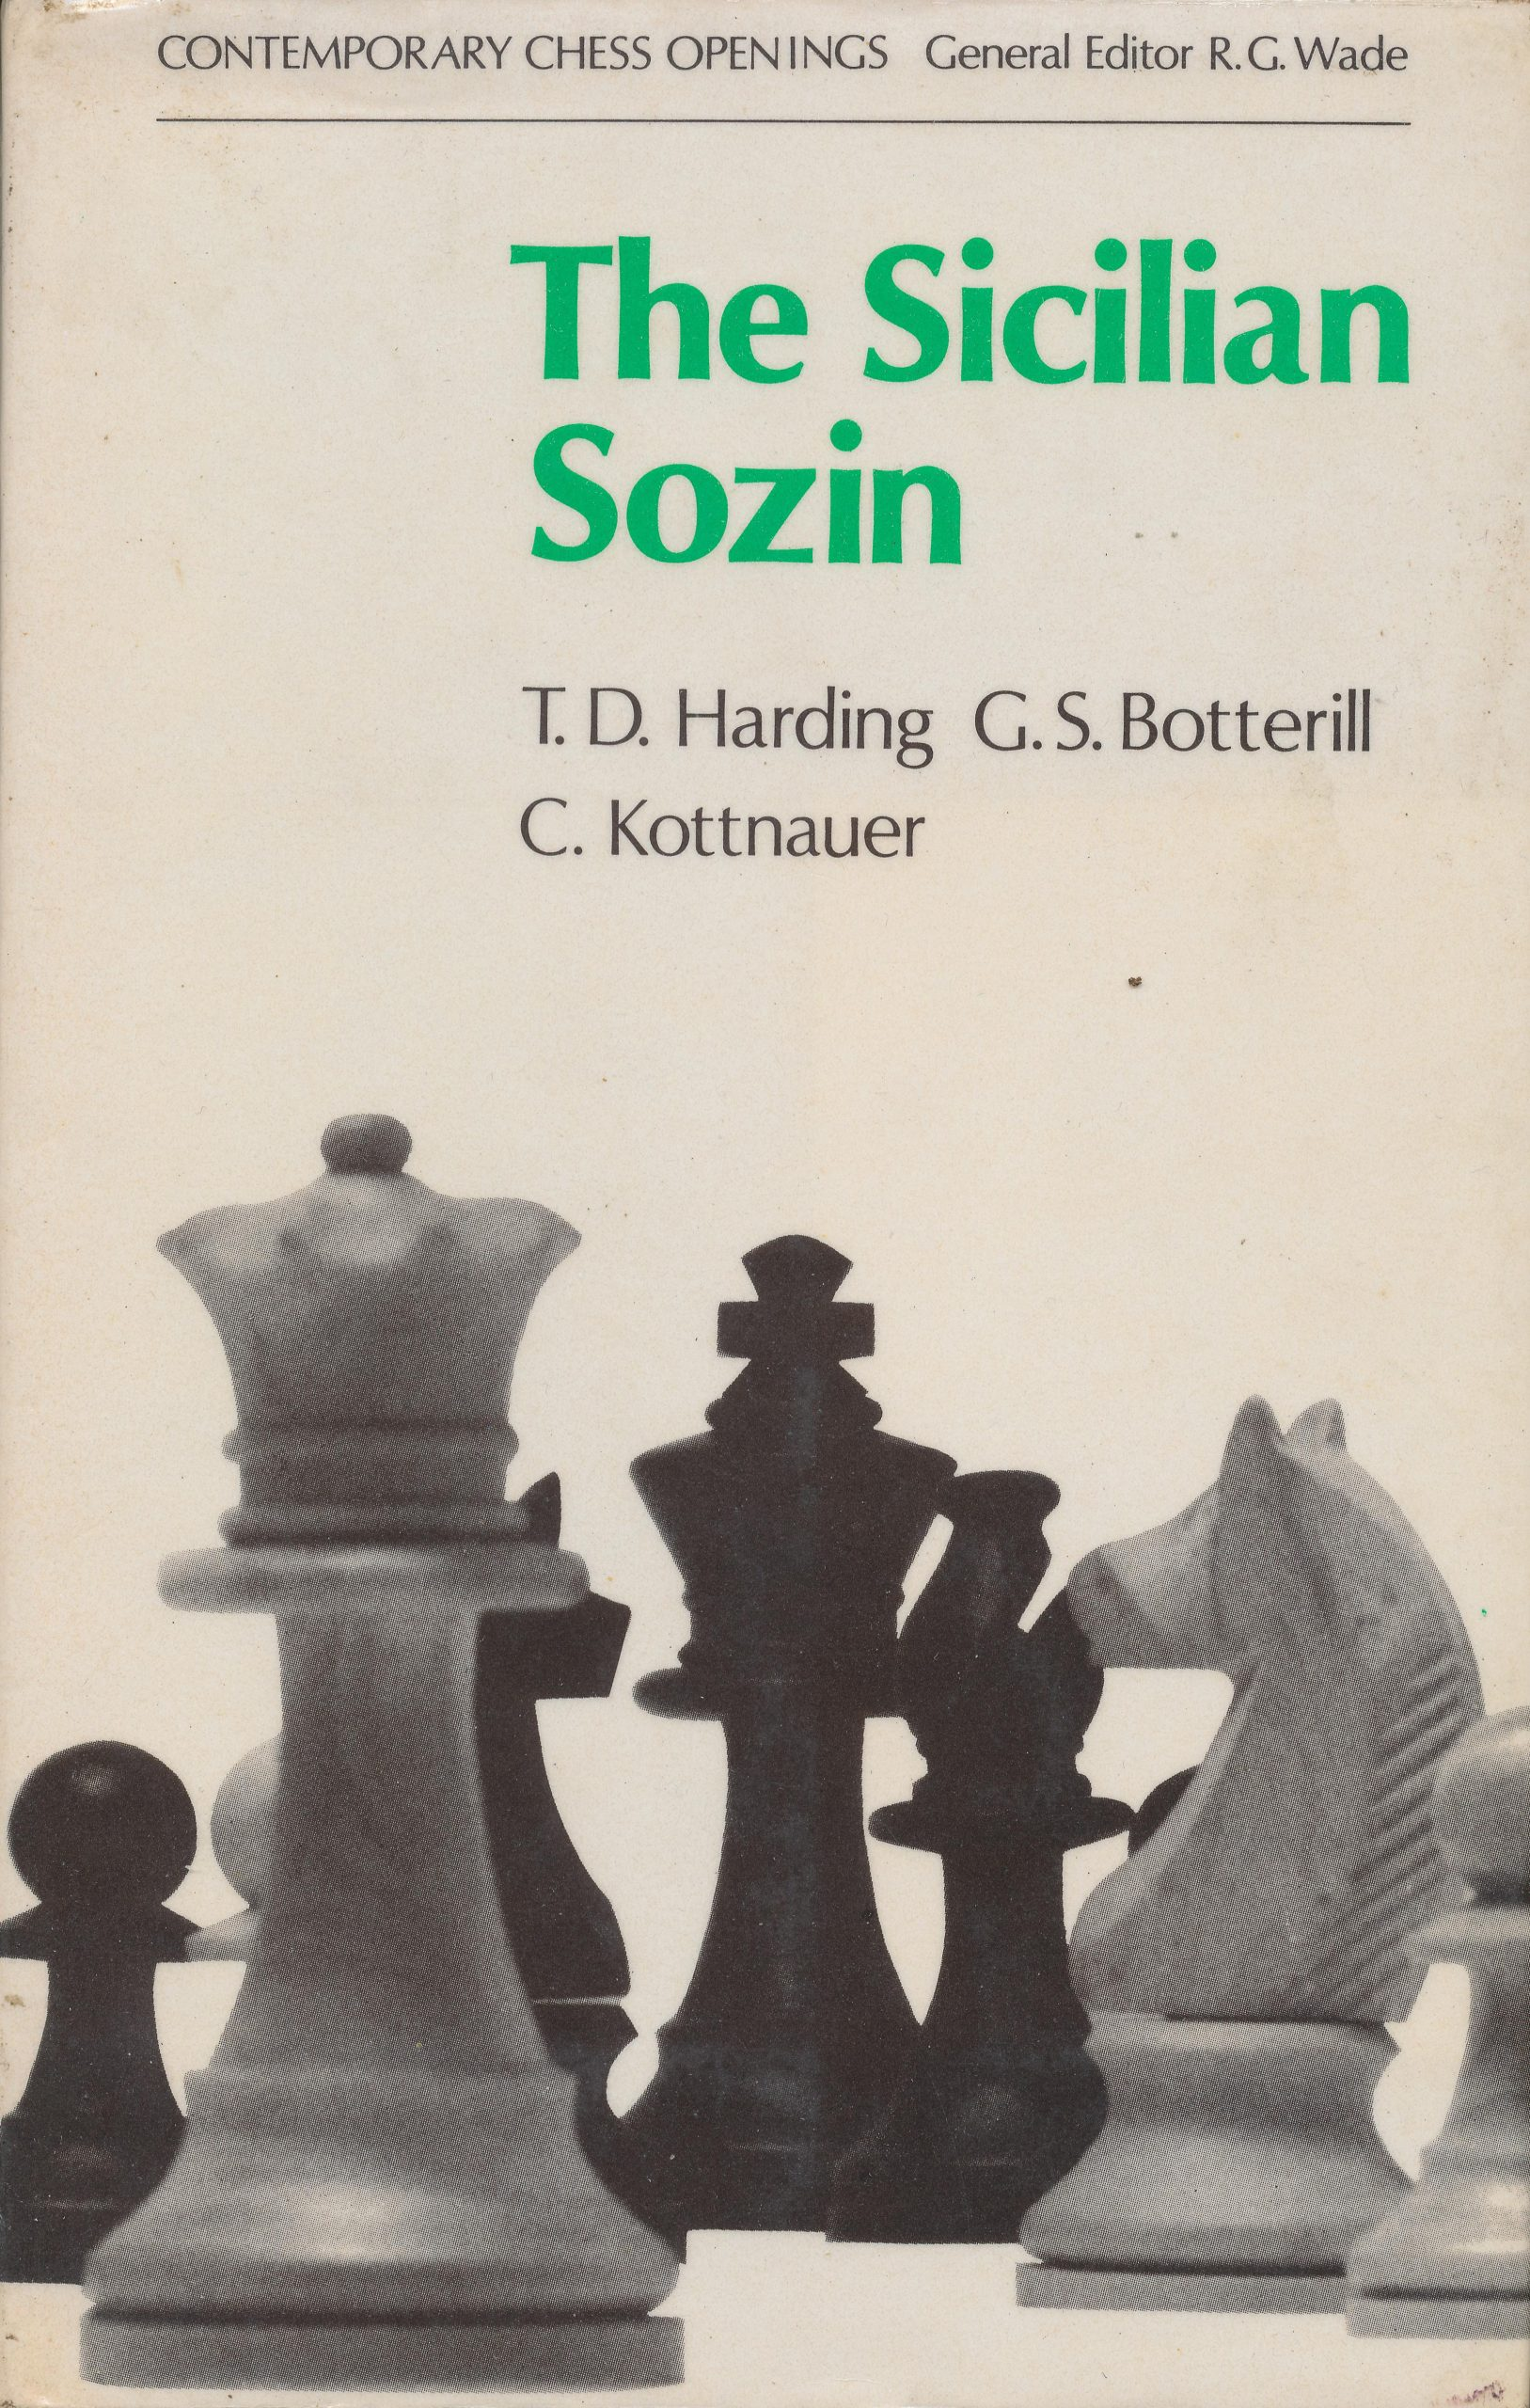 The Sicilian Sozin, TD Harding, GS Botterill, C. Kottnauer, Batsford, 1974